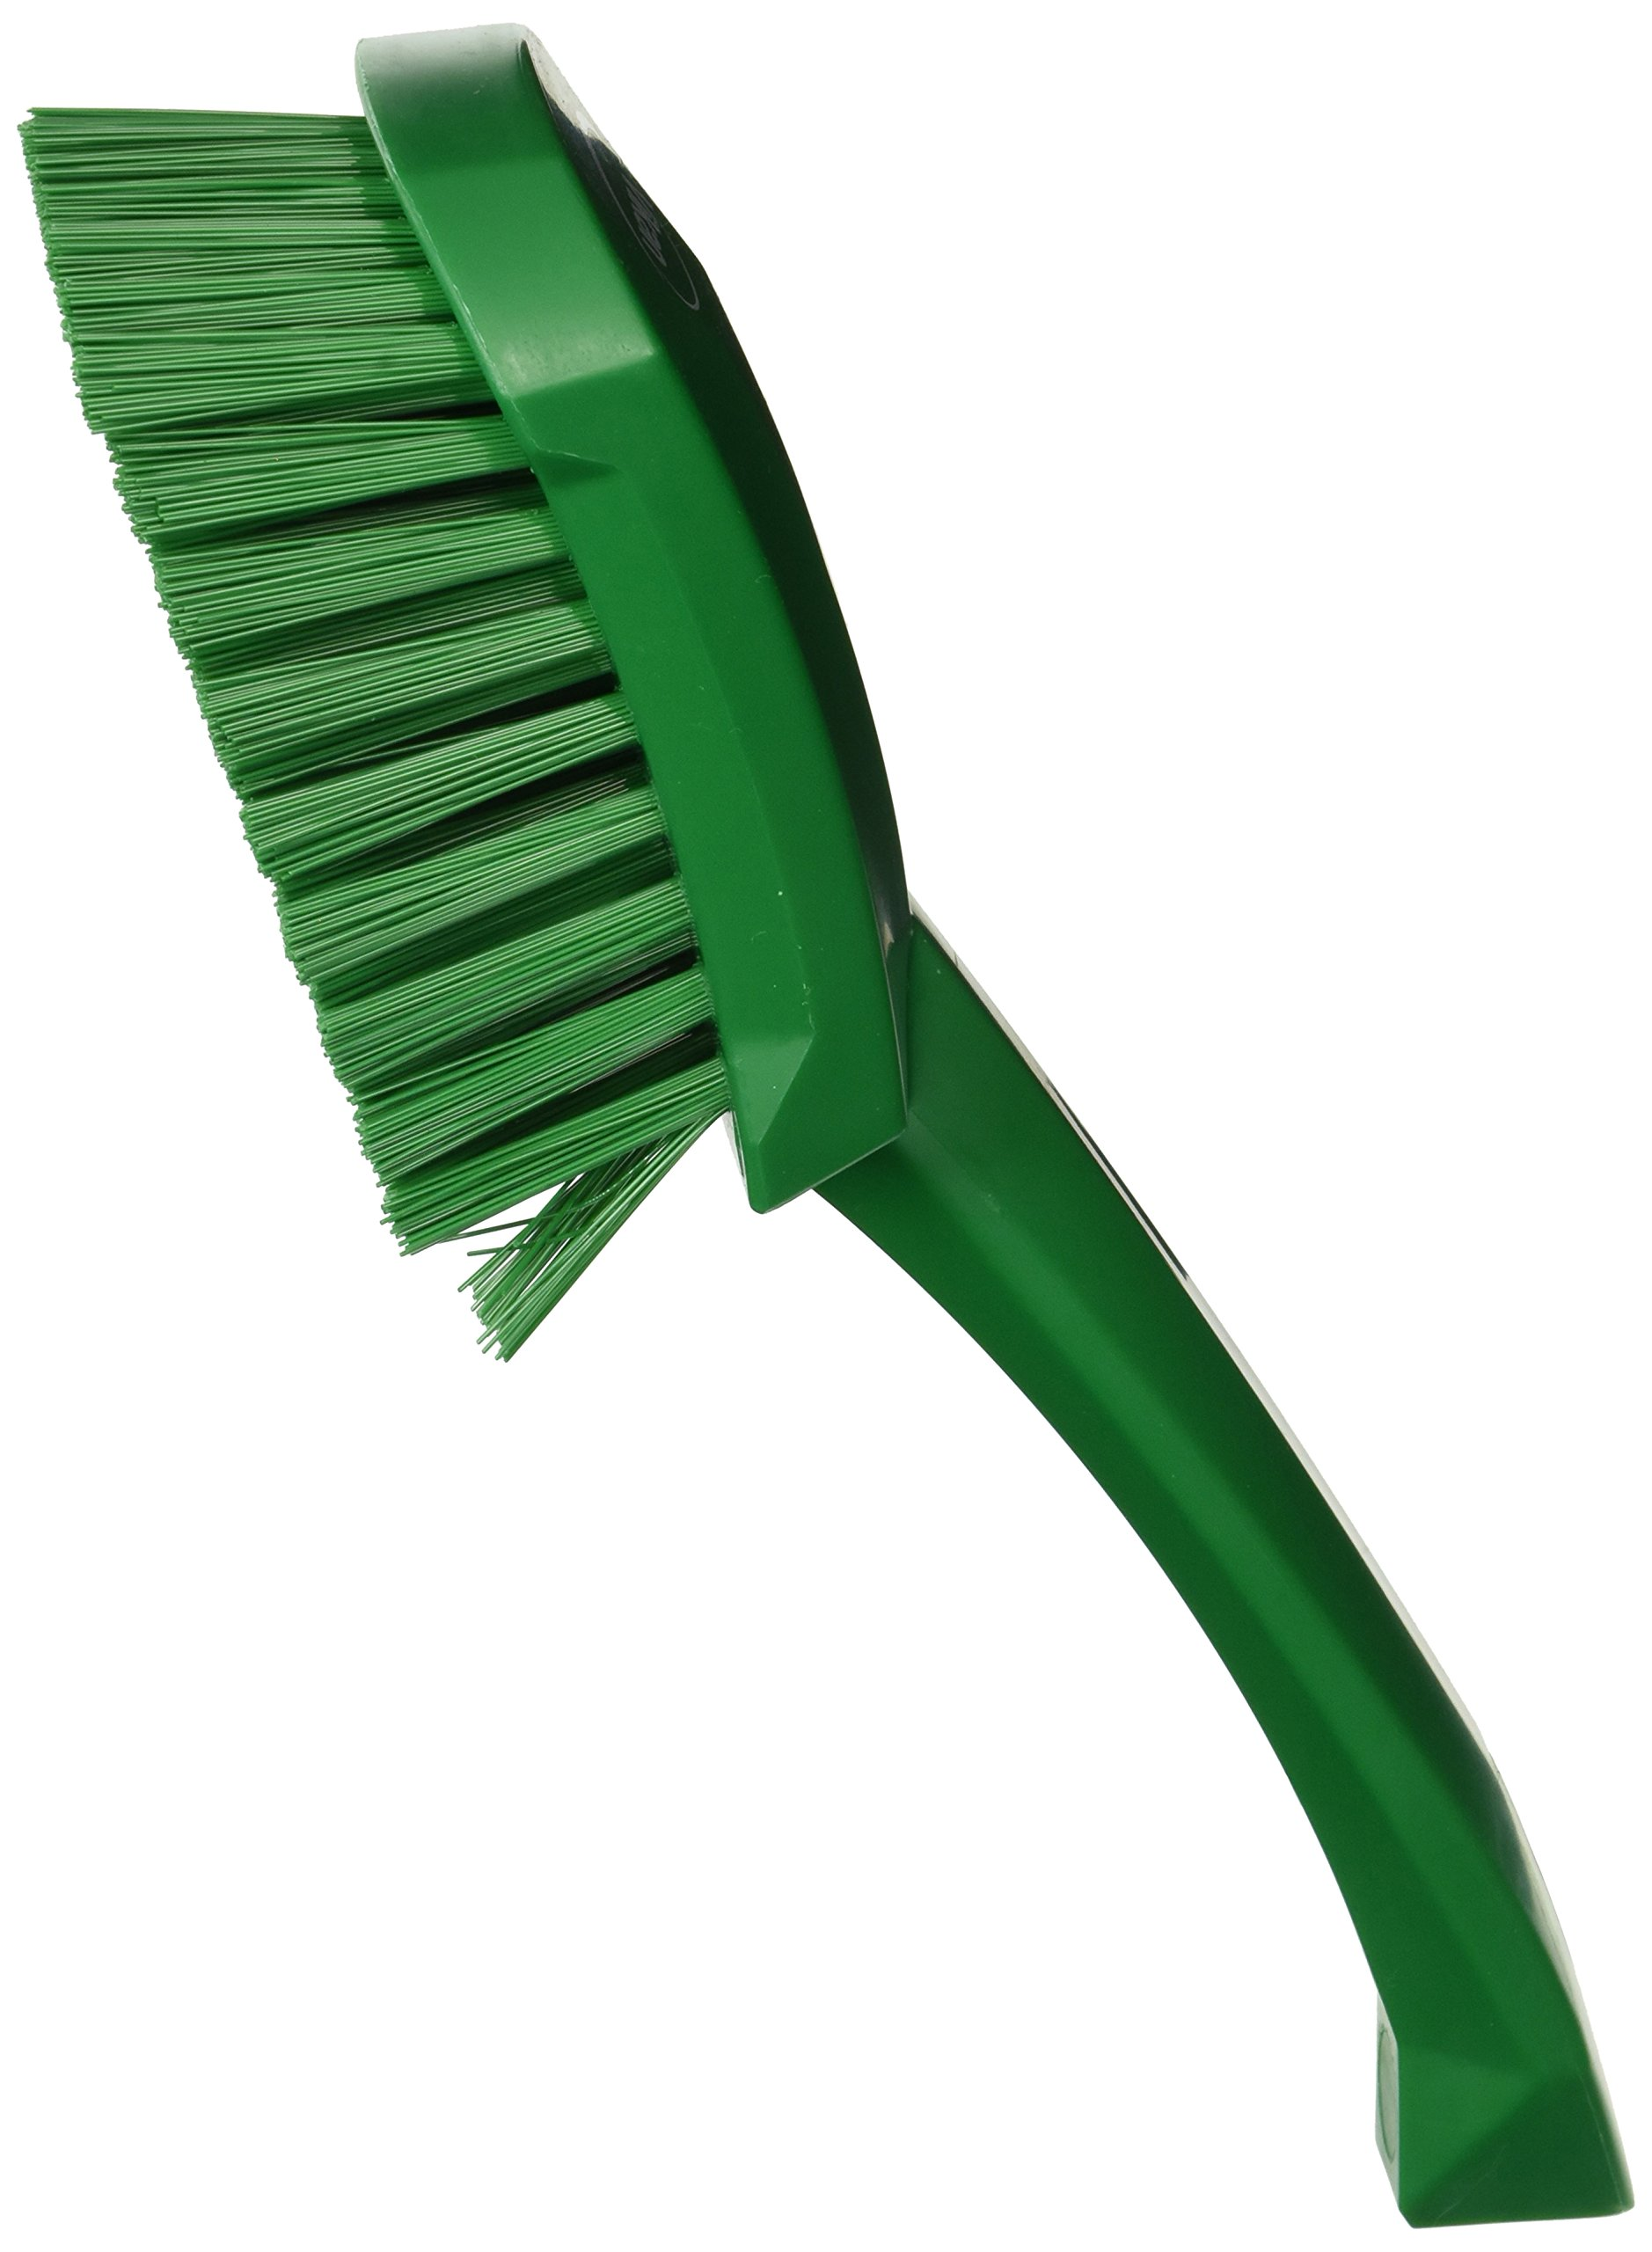 Vikan 41922 Heavy Duty Sweep Hand Brush, Polypropylene, Polyester Stiff Bristle, 10'', Green